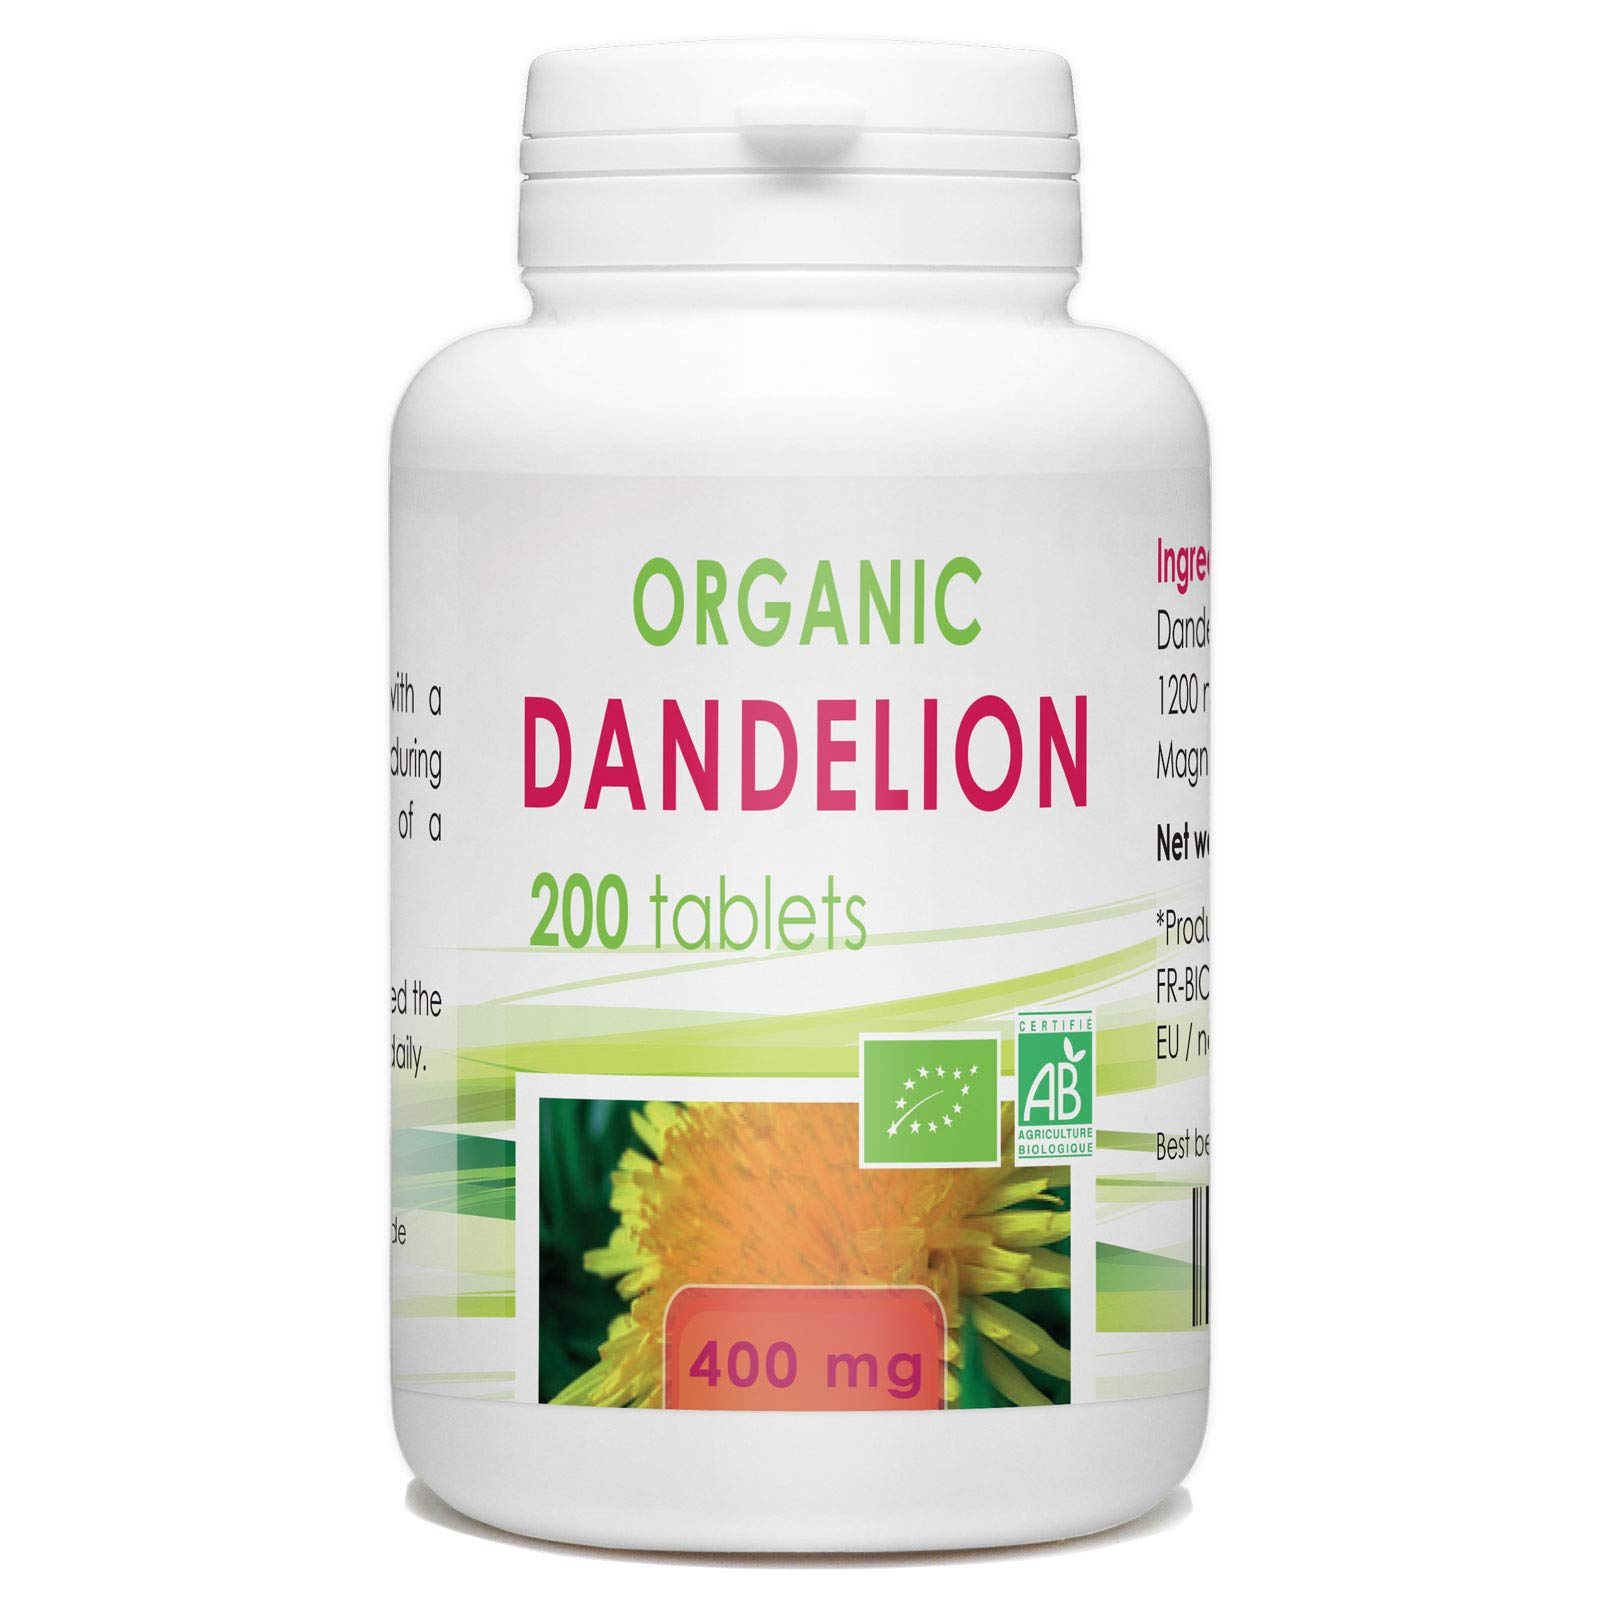 Organic Dandelion Root - 400 mg - 200 Tablets